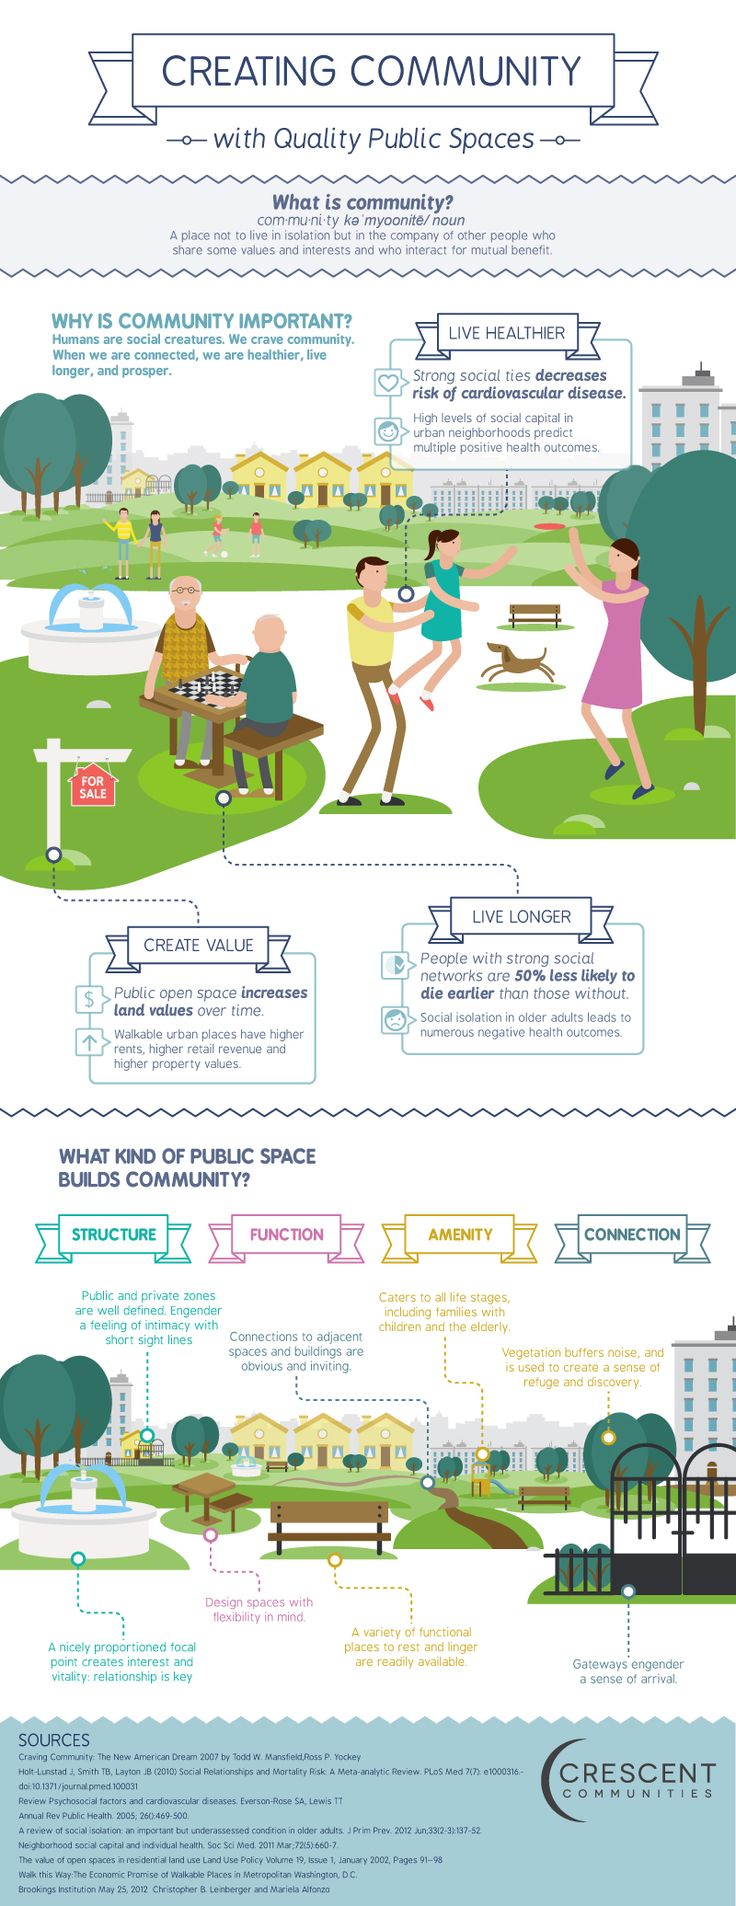 Creating community with Quality Public Spaces. #infographic